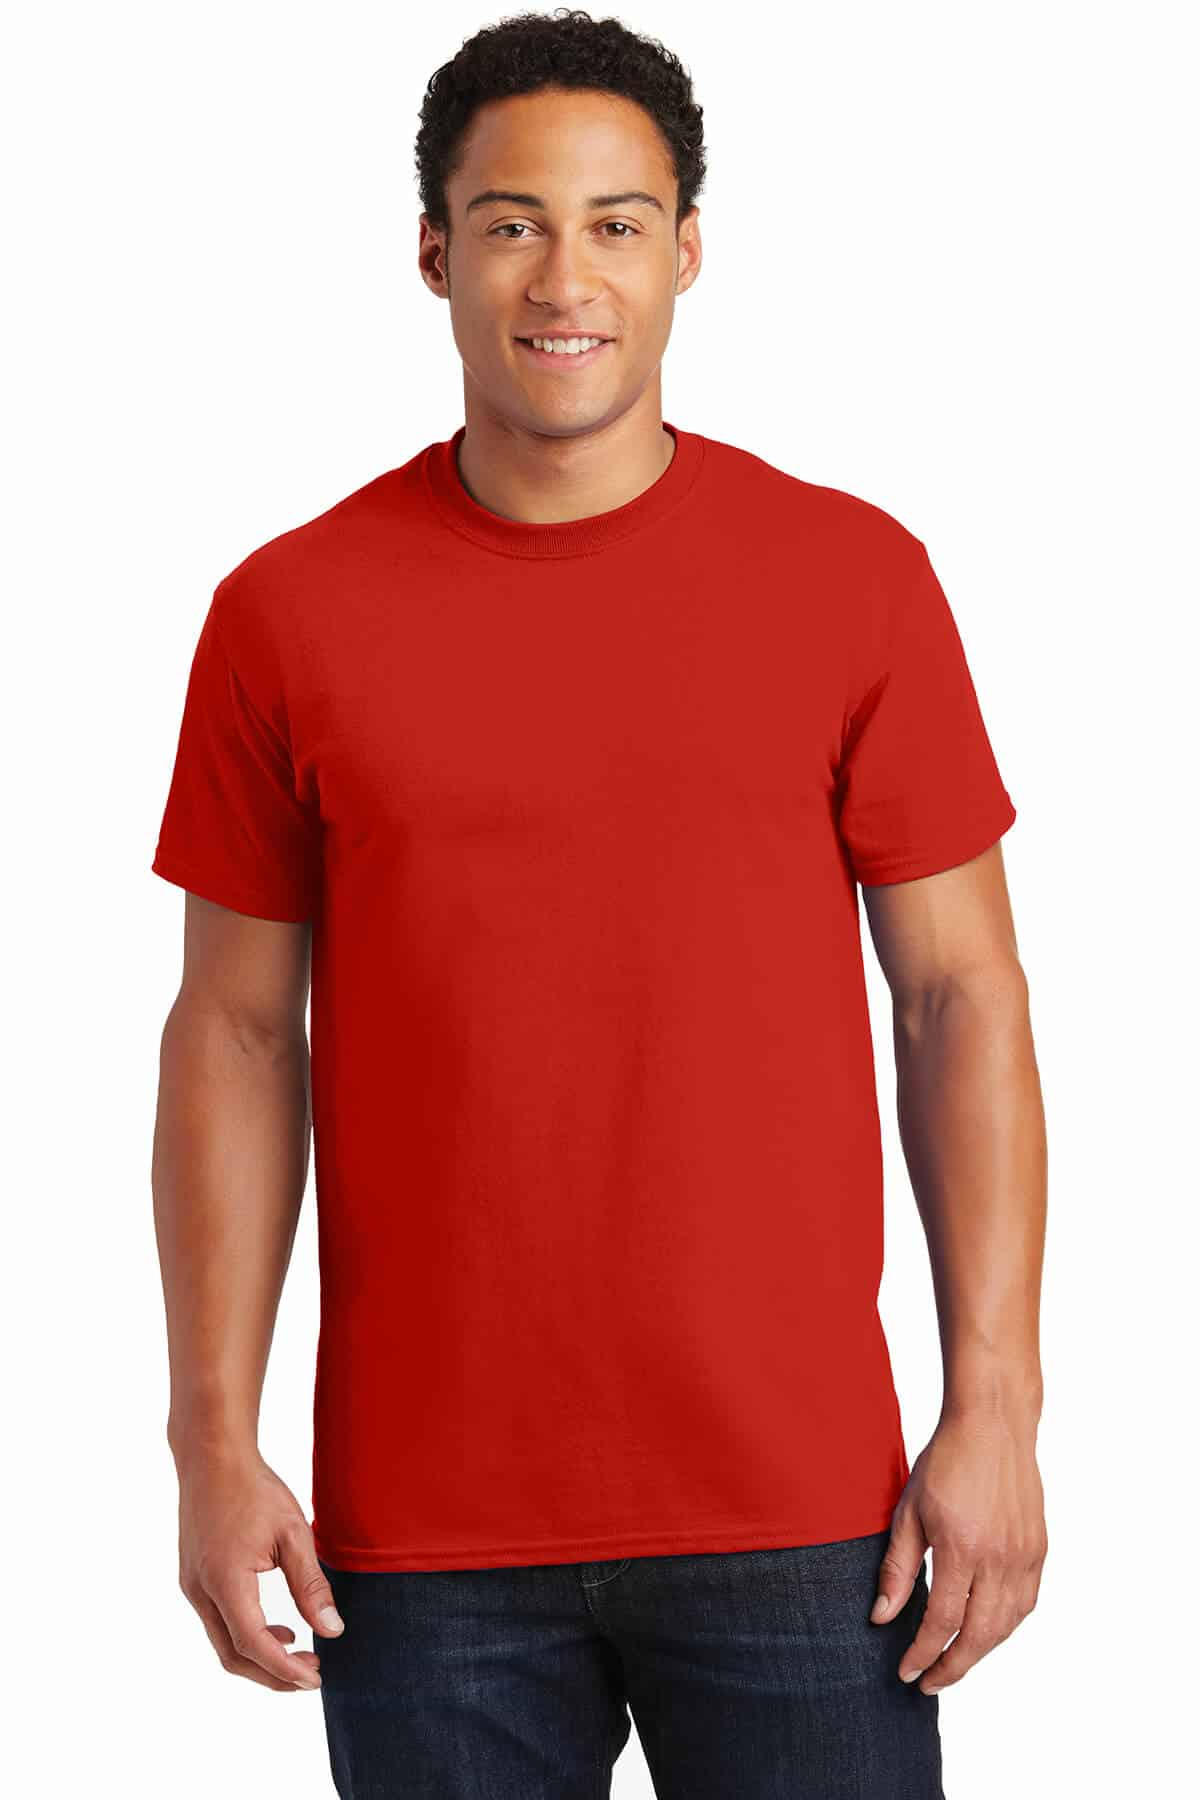 Red Tee Front